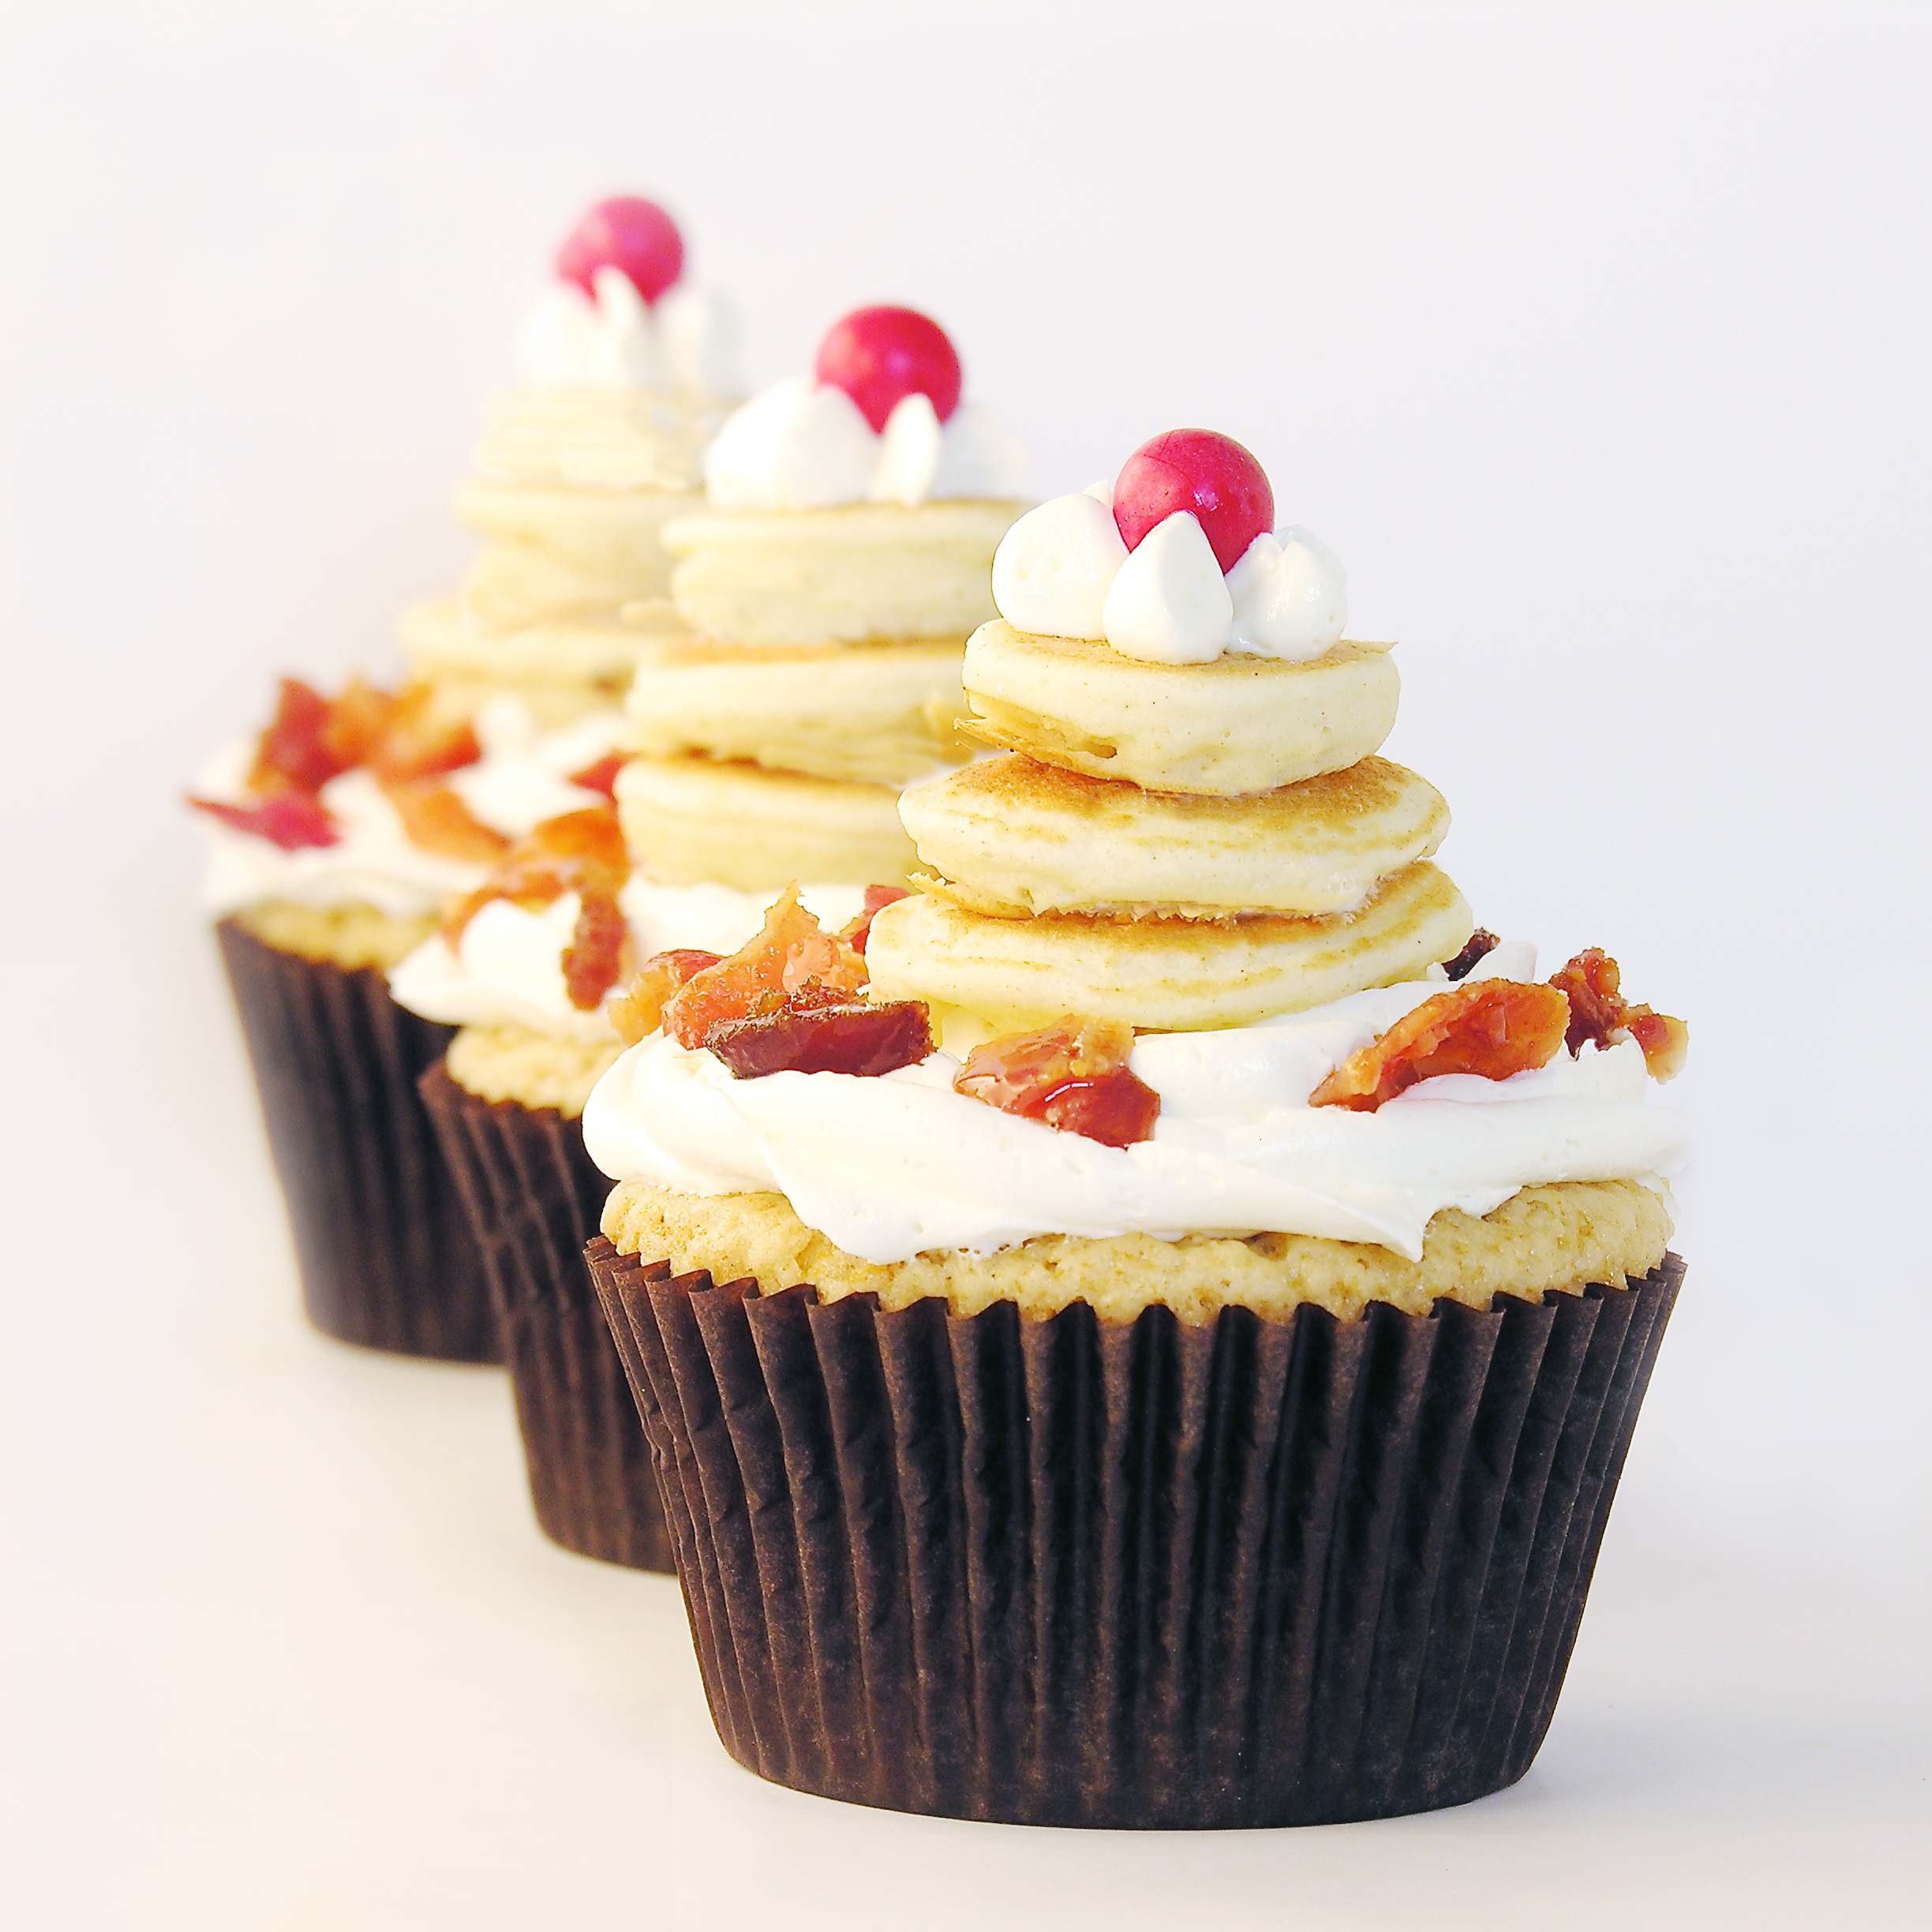 6 Photos of Pancake Cupcakes With Bacon